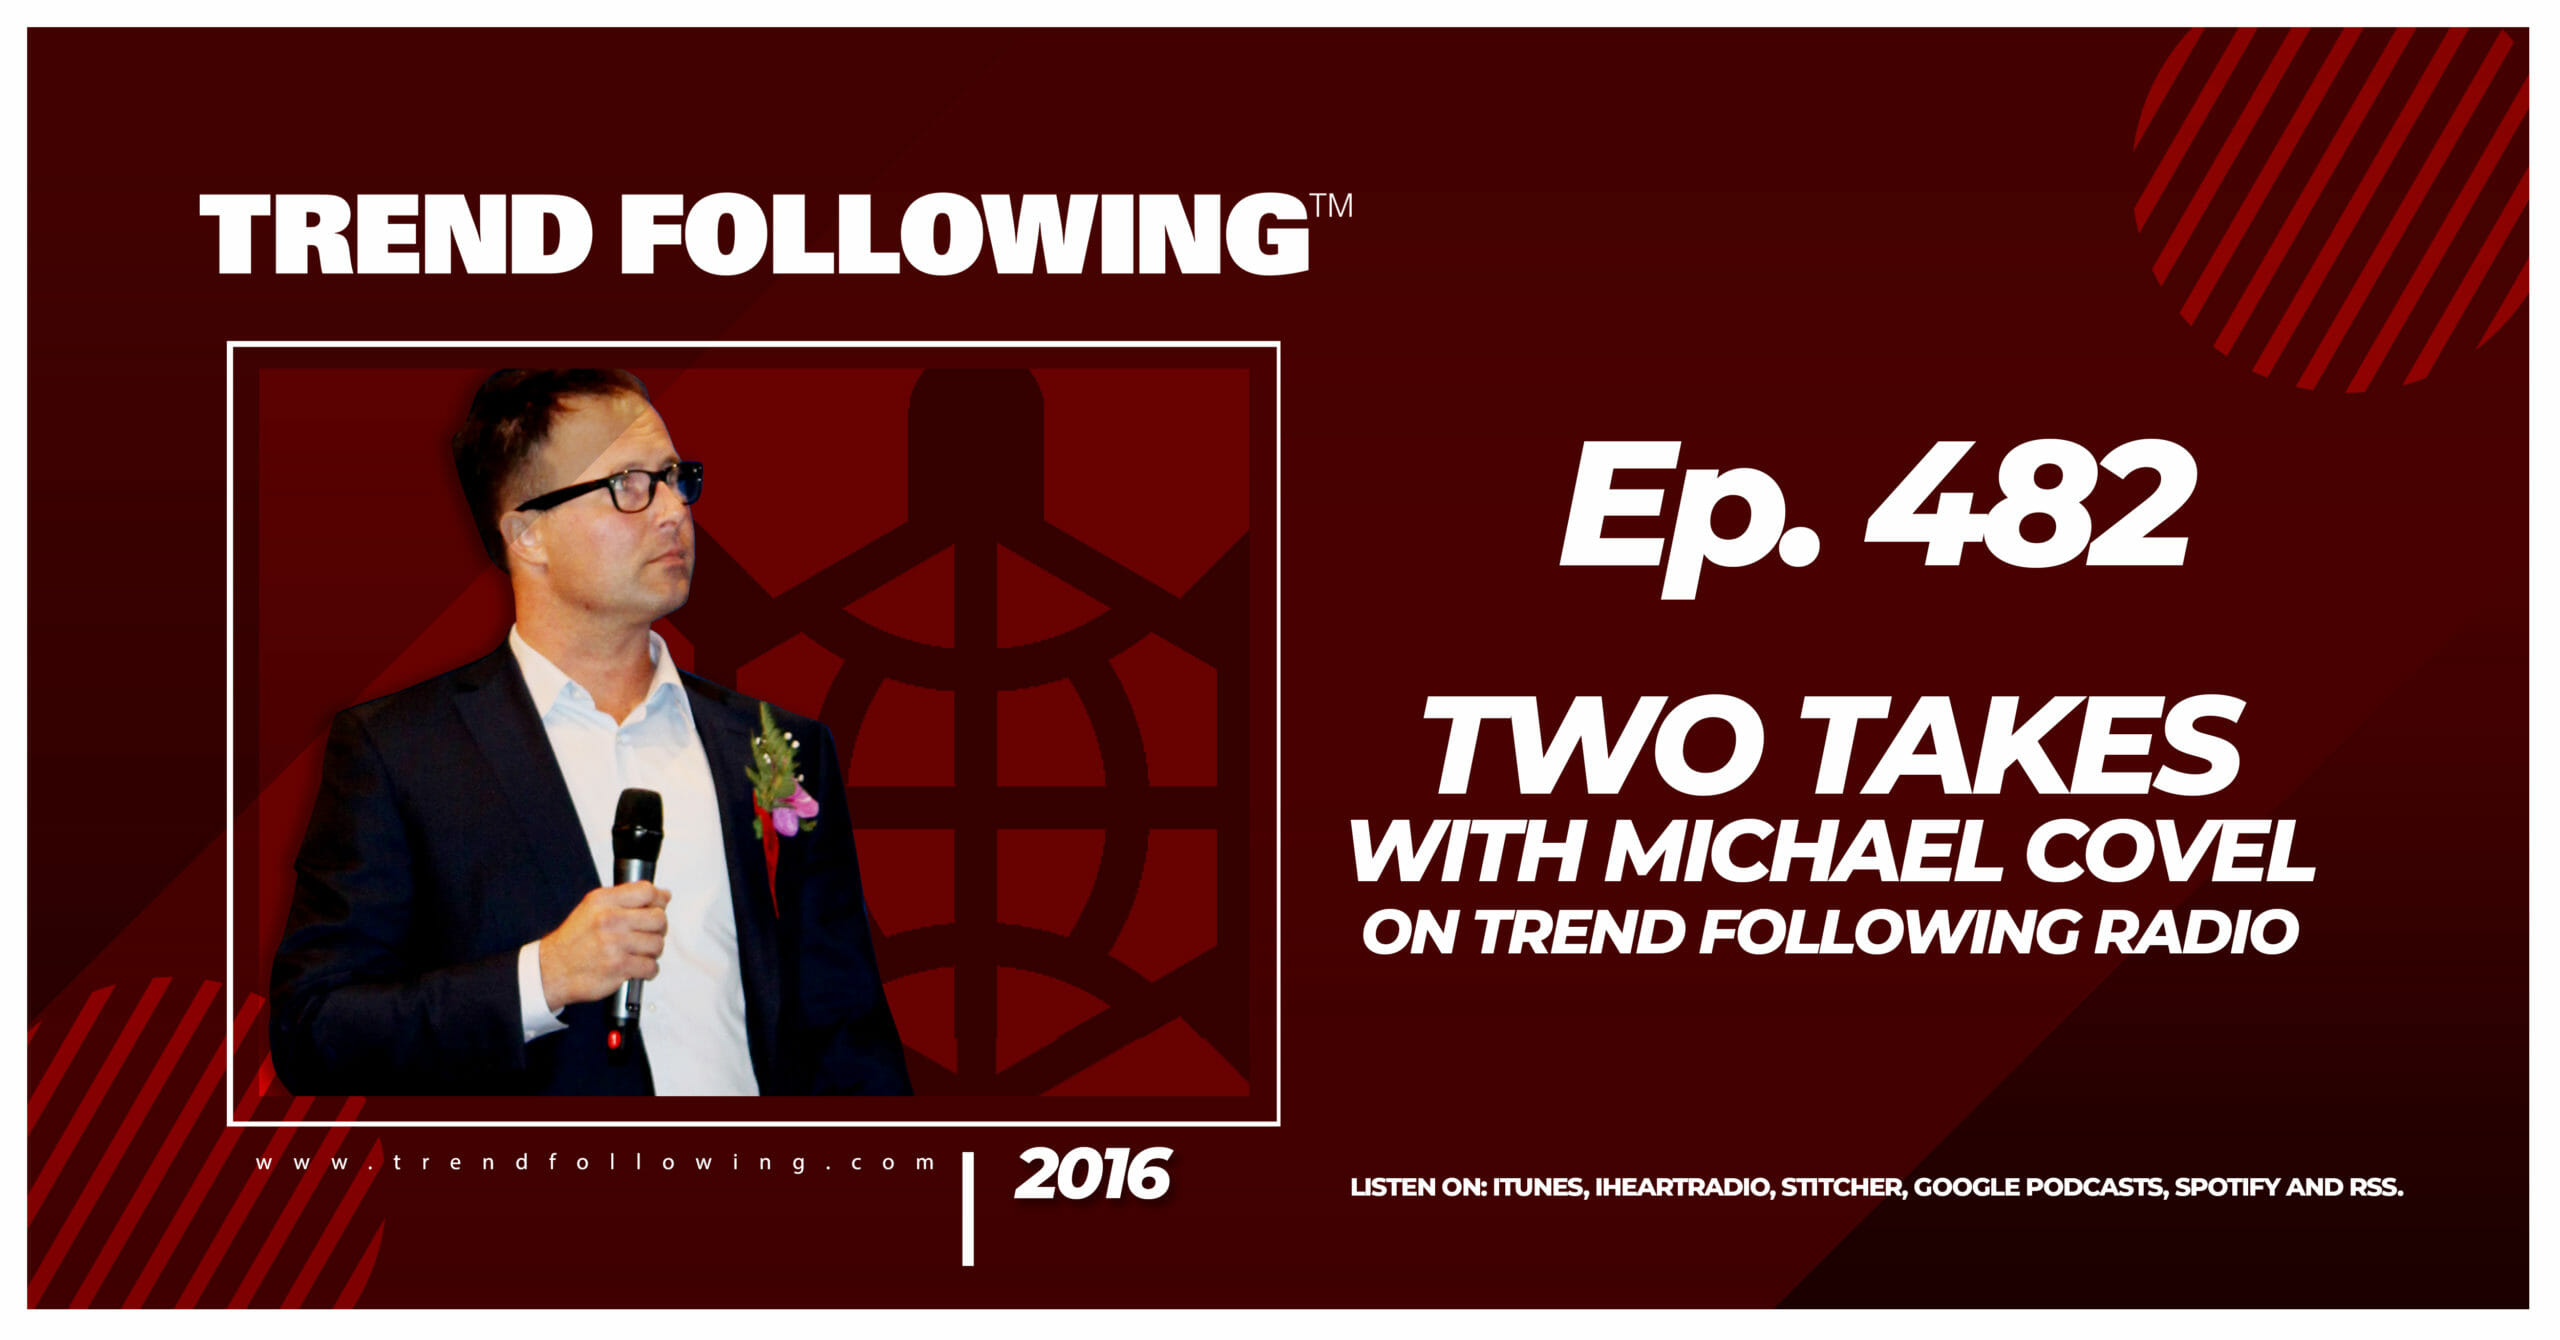 Two Takes with Michael Covel on Trend Following Radio